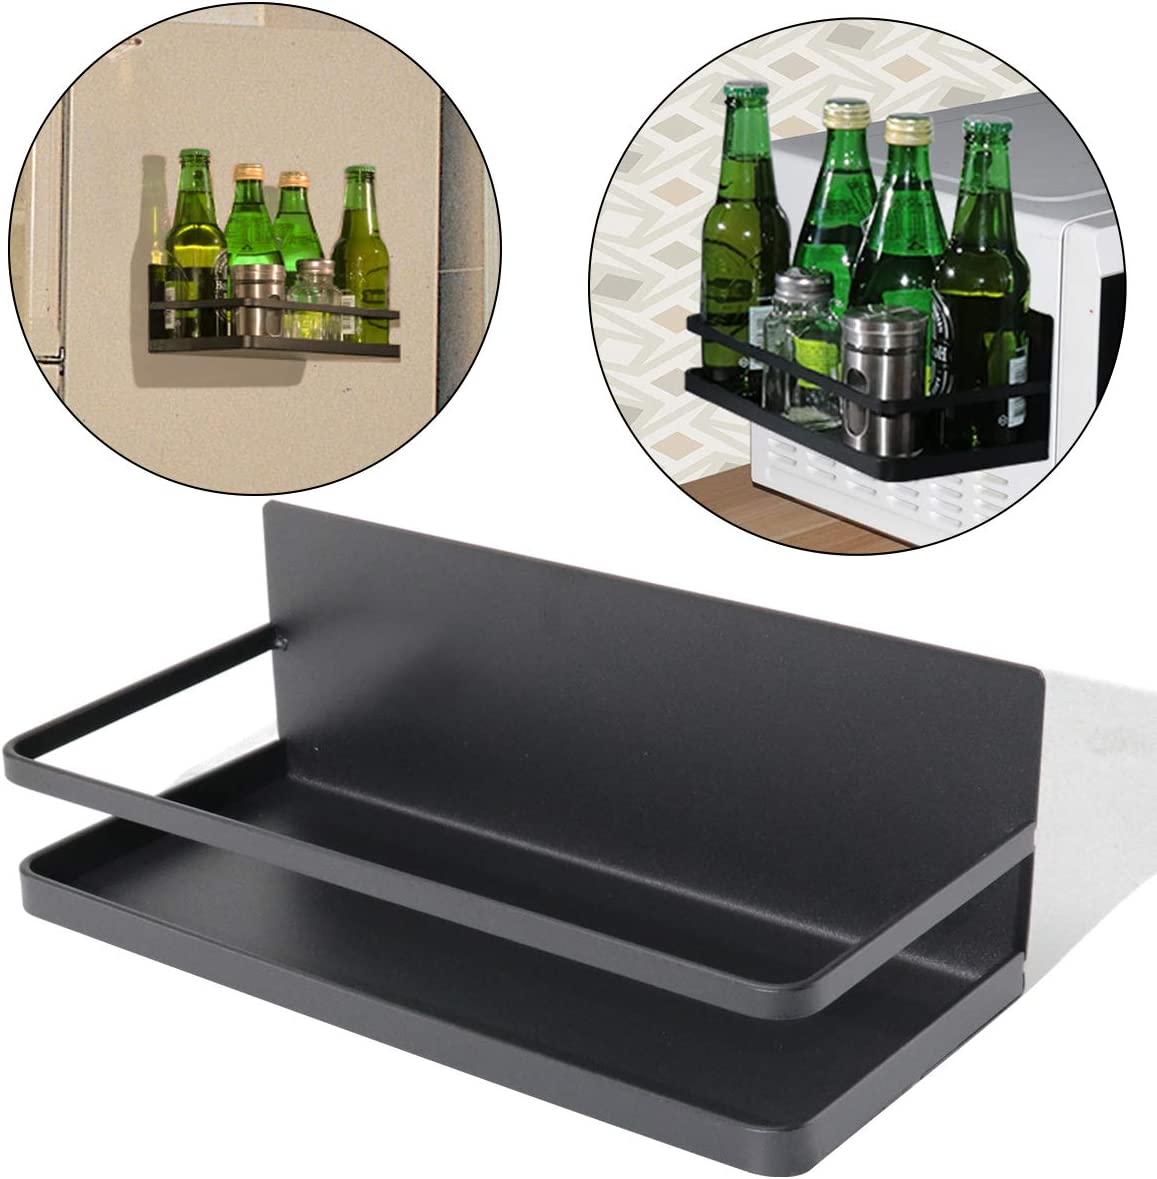 Boeray Magnetic Fridge Spice Rack Refrigerator Organizer Rack Single Tier Kitchen Magnetic Side Shelf for Storage Spices Olive Oil Sauce Salt Pepper Towel Black